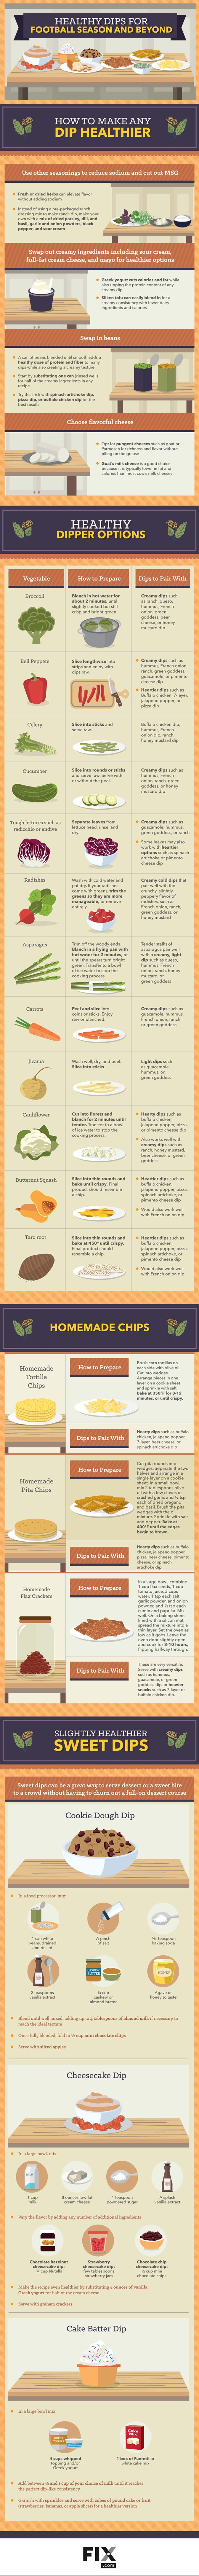 From swapping in good-for-you ingredients in classic dip recipes to using smarter dipping choices -- and even some ideas for healthy dessert dips -- the chart below will show you how to do this Super Bowl healthier.